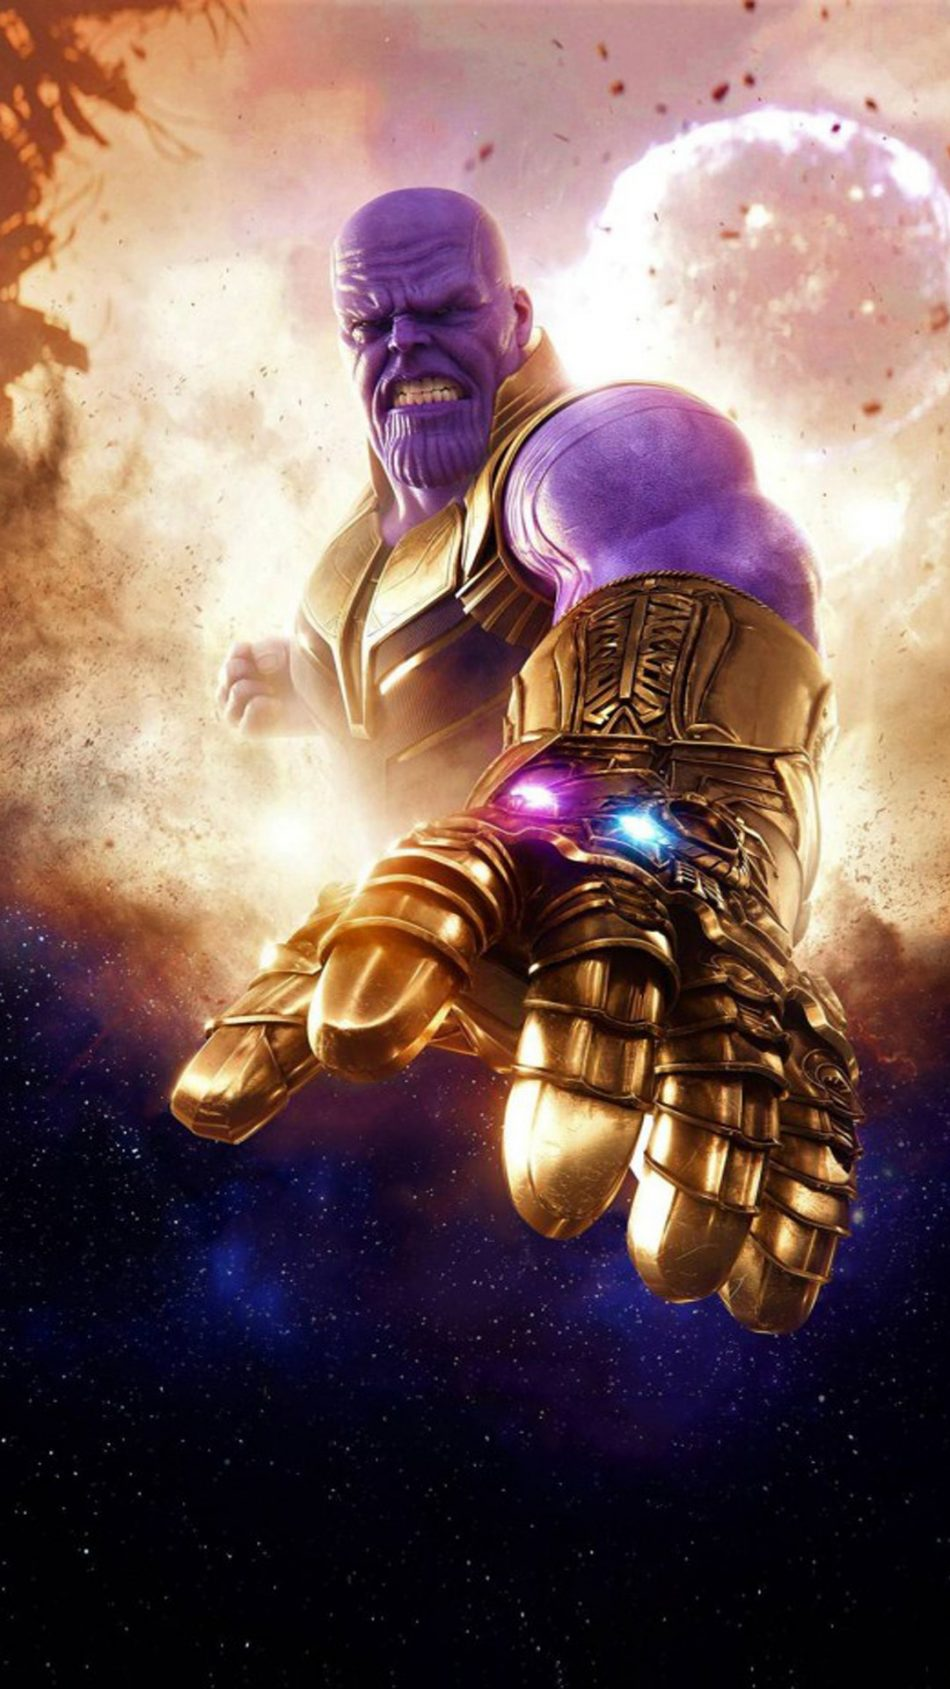 Thanos avengers infinity war 2018 download free 100 for American cuisine movie download